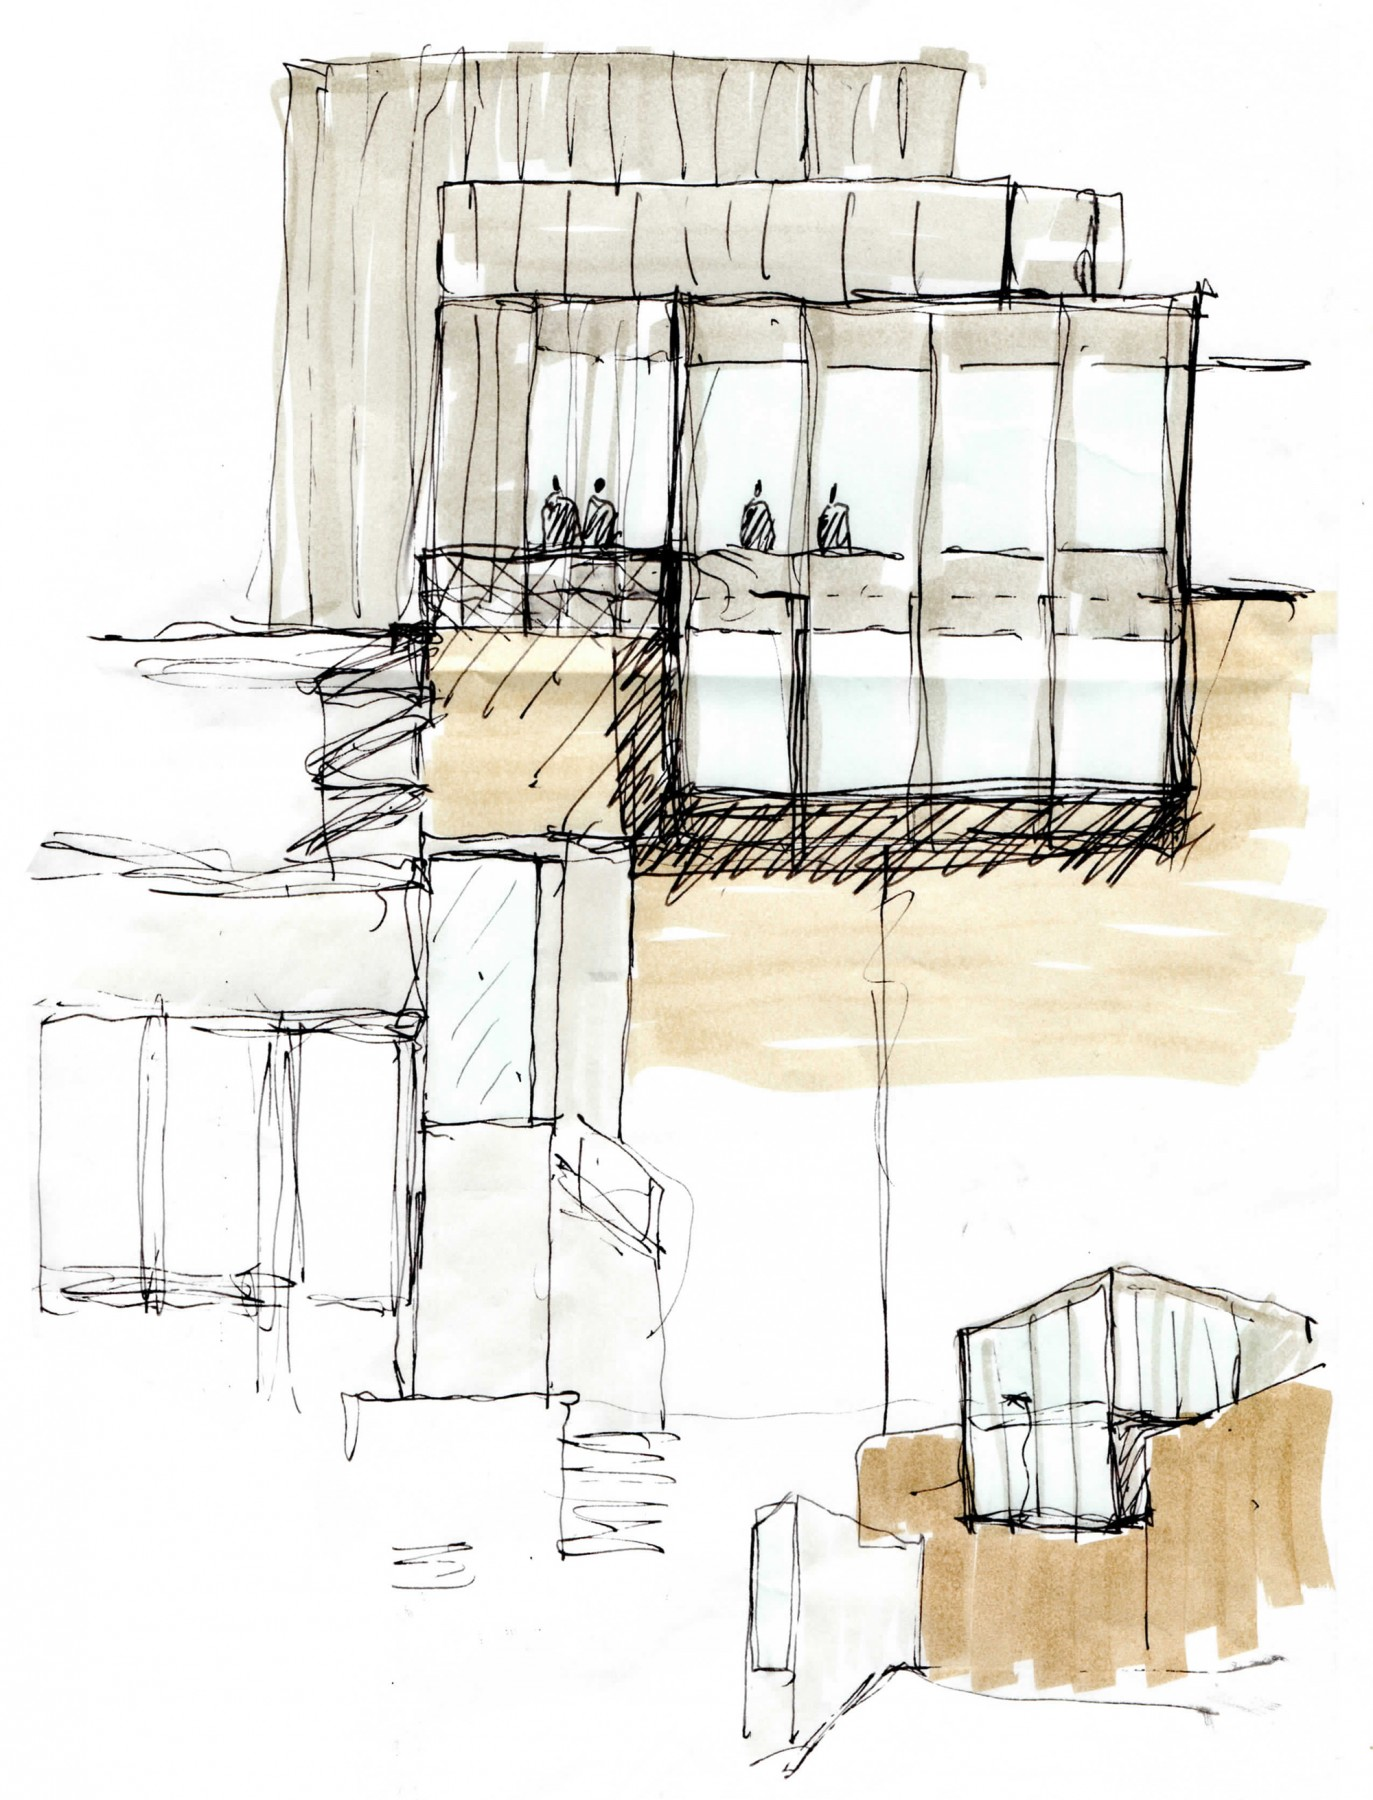 Tate-St-Ives-Cornwall-council-new-Extension-competition-Art-gallery-education-Jamie-Fobert-Architects-sketch